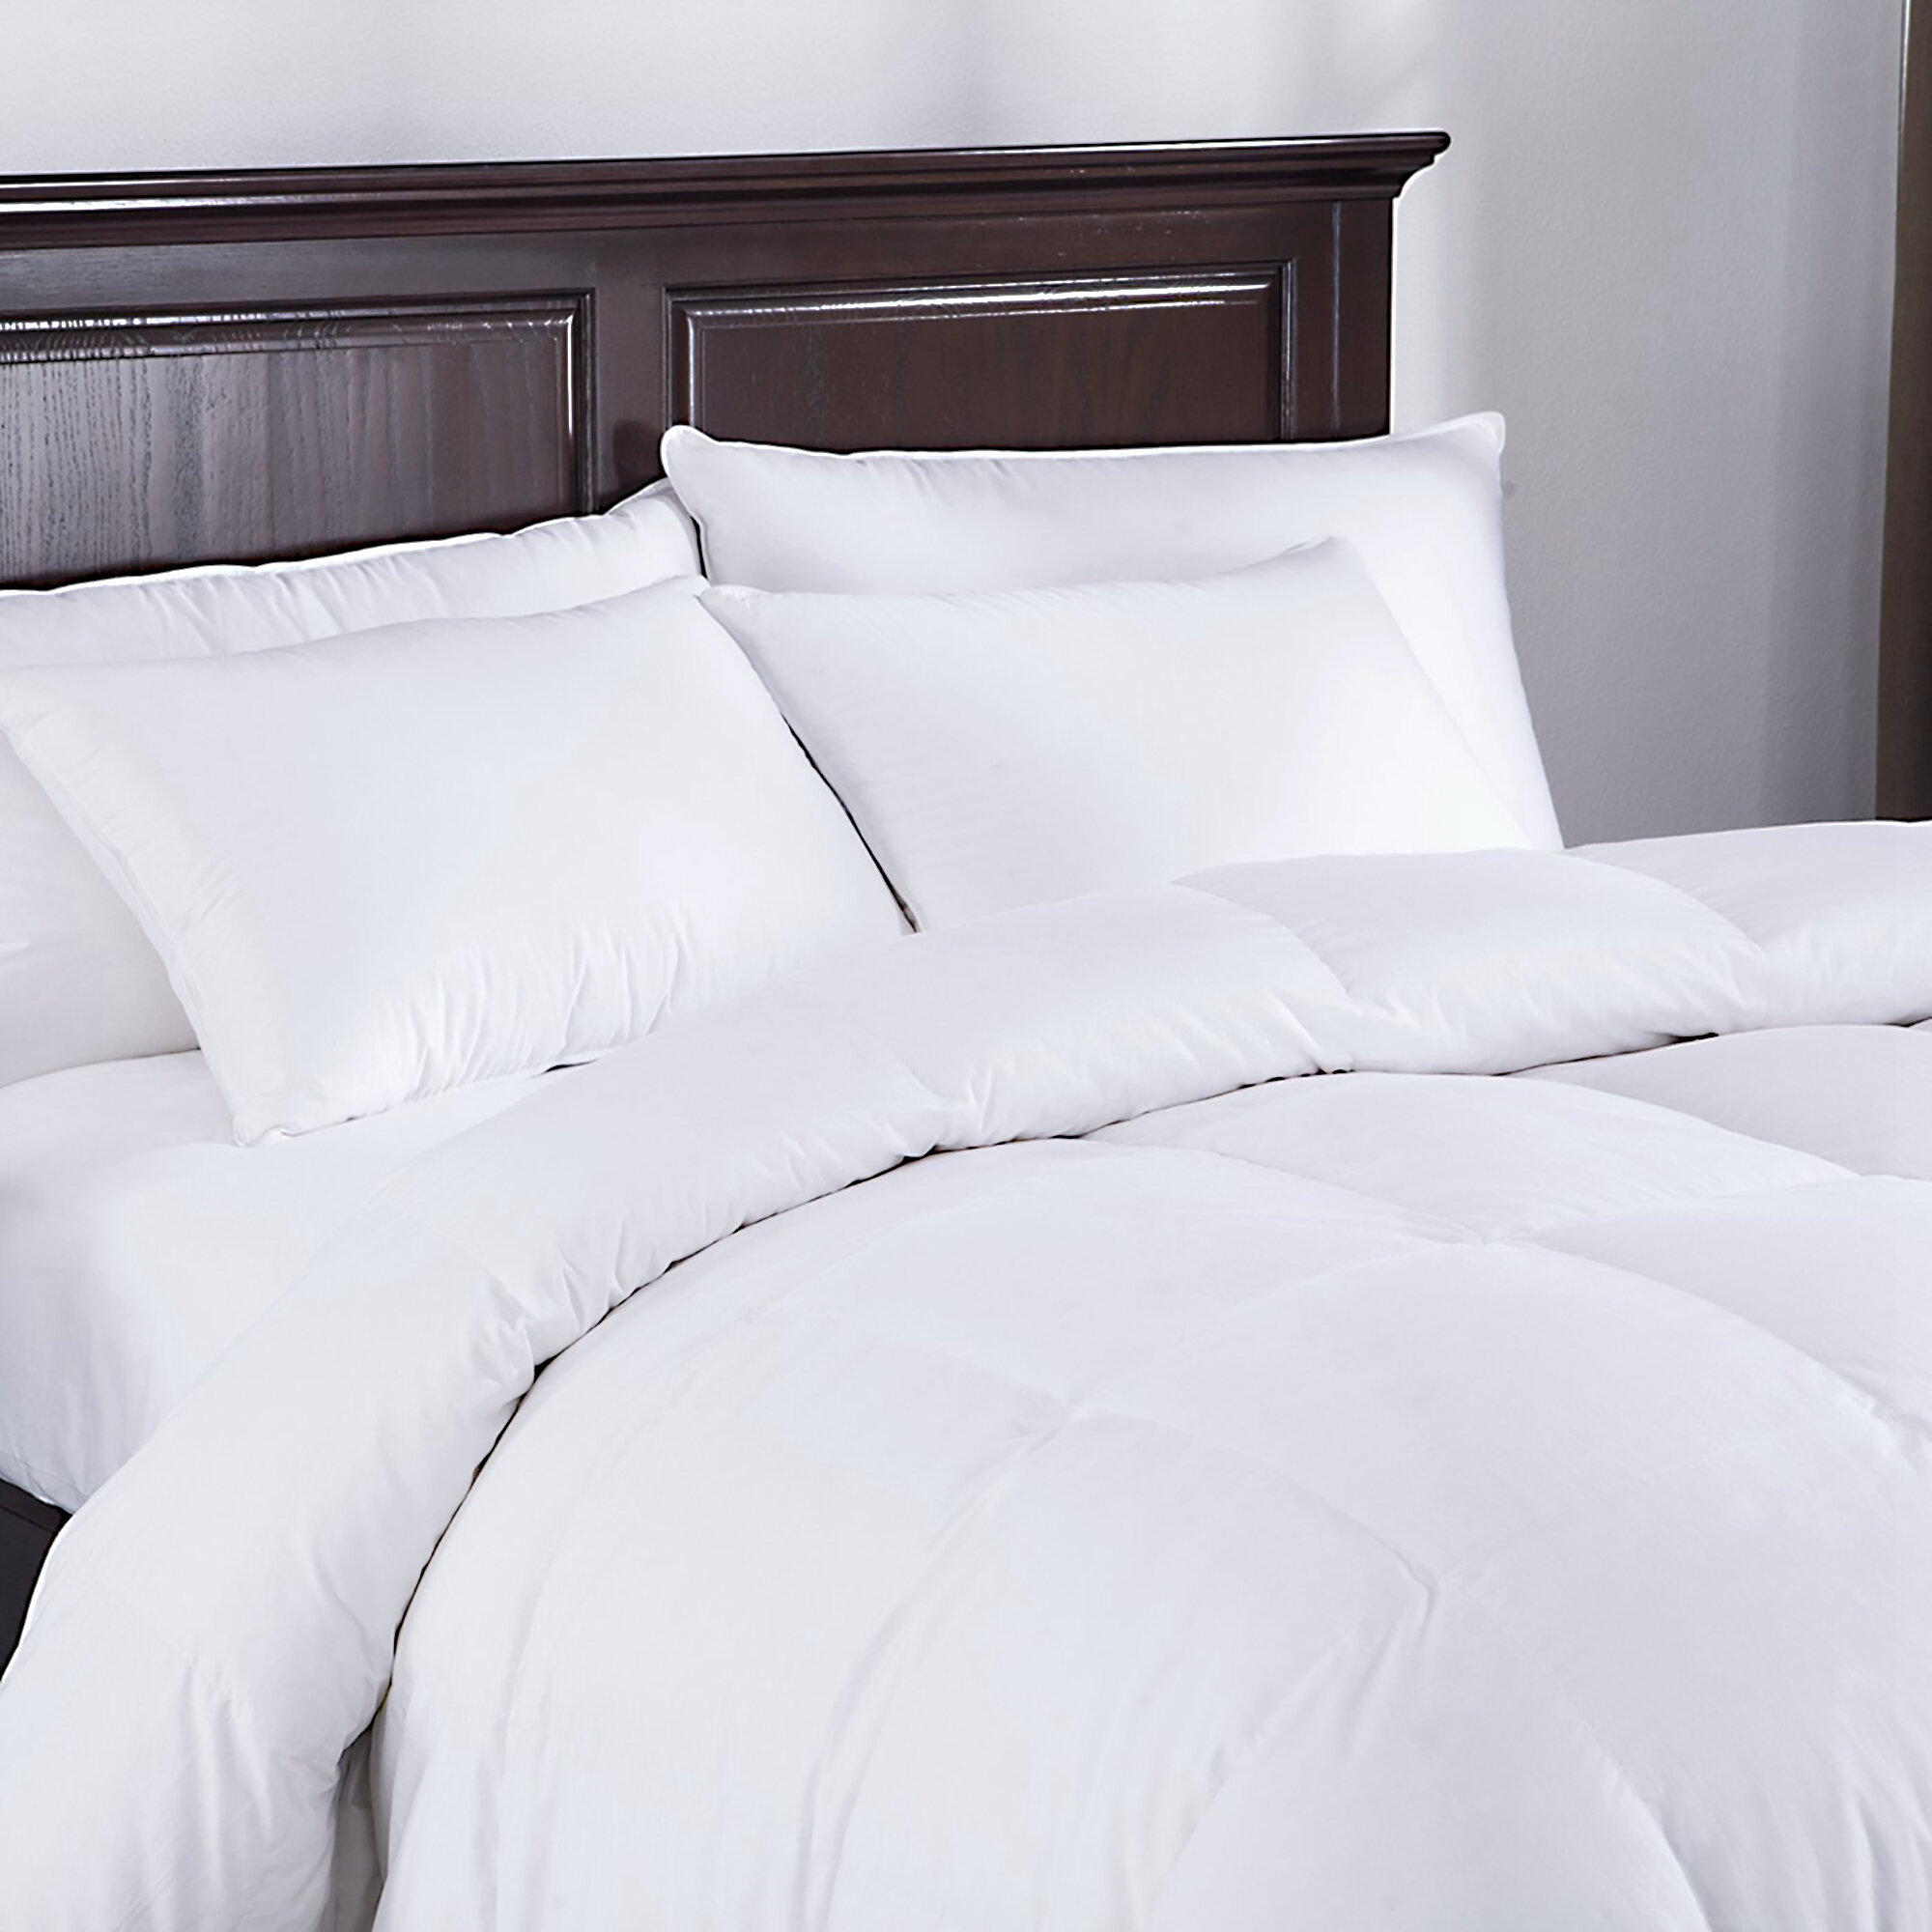 oversize heritage weight bedding dusseldorf all european comforter down goose hungarian year bath white product